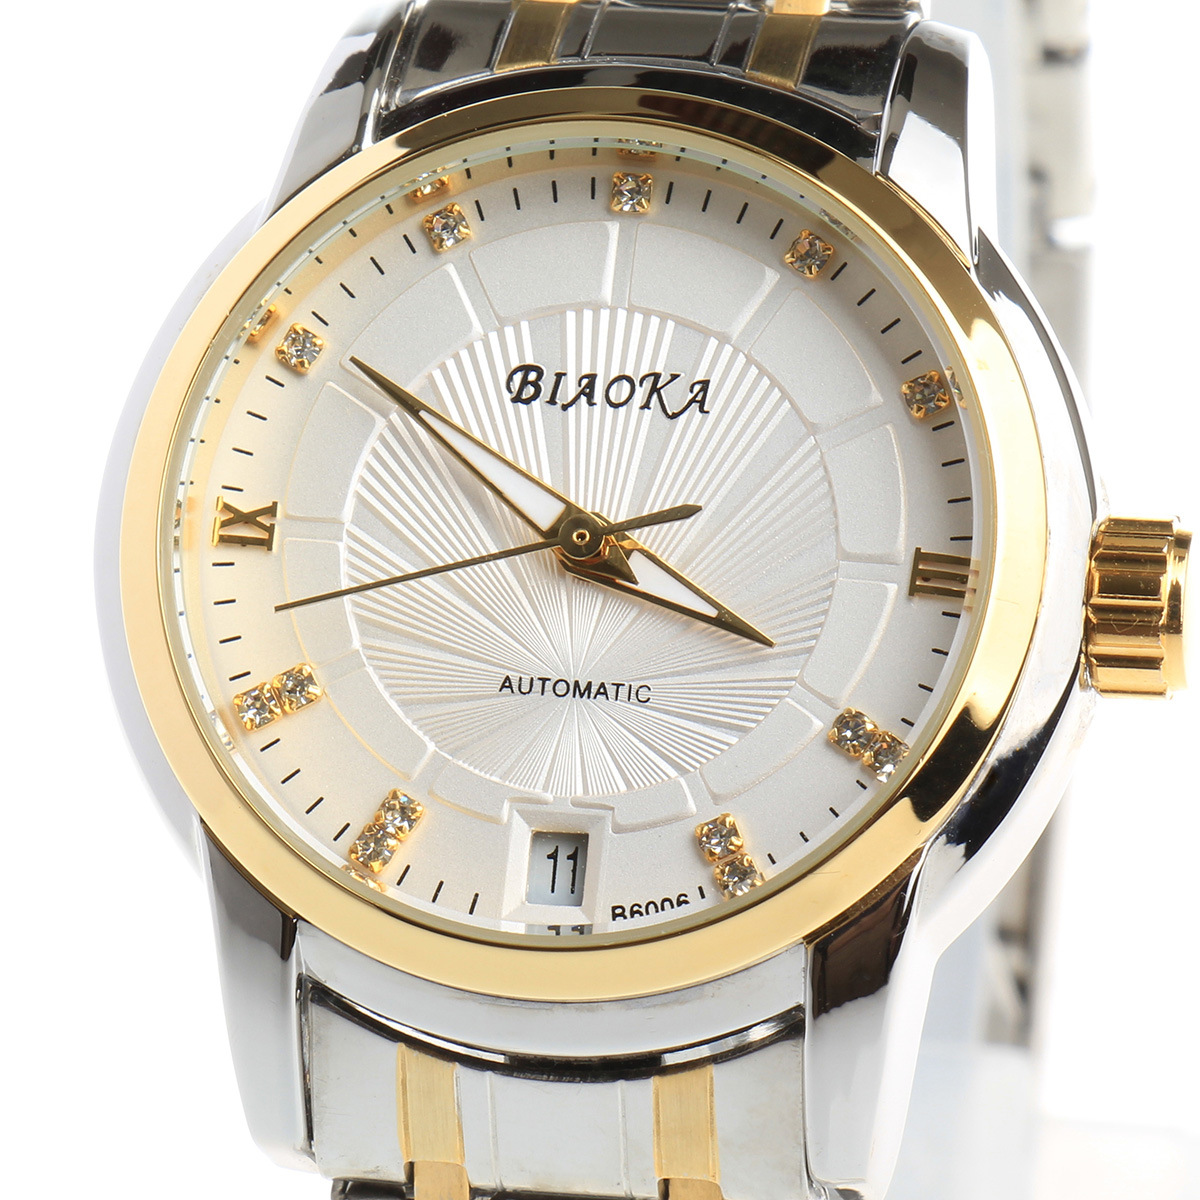 BIAOKA Brand New Fashion Gold Watch Stylish Steel Women Clock Classic Mechanical Dress Skeleton Waterproof Watch Reloj Mujer